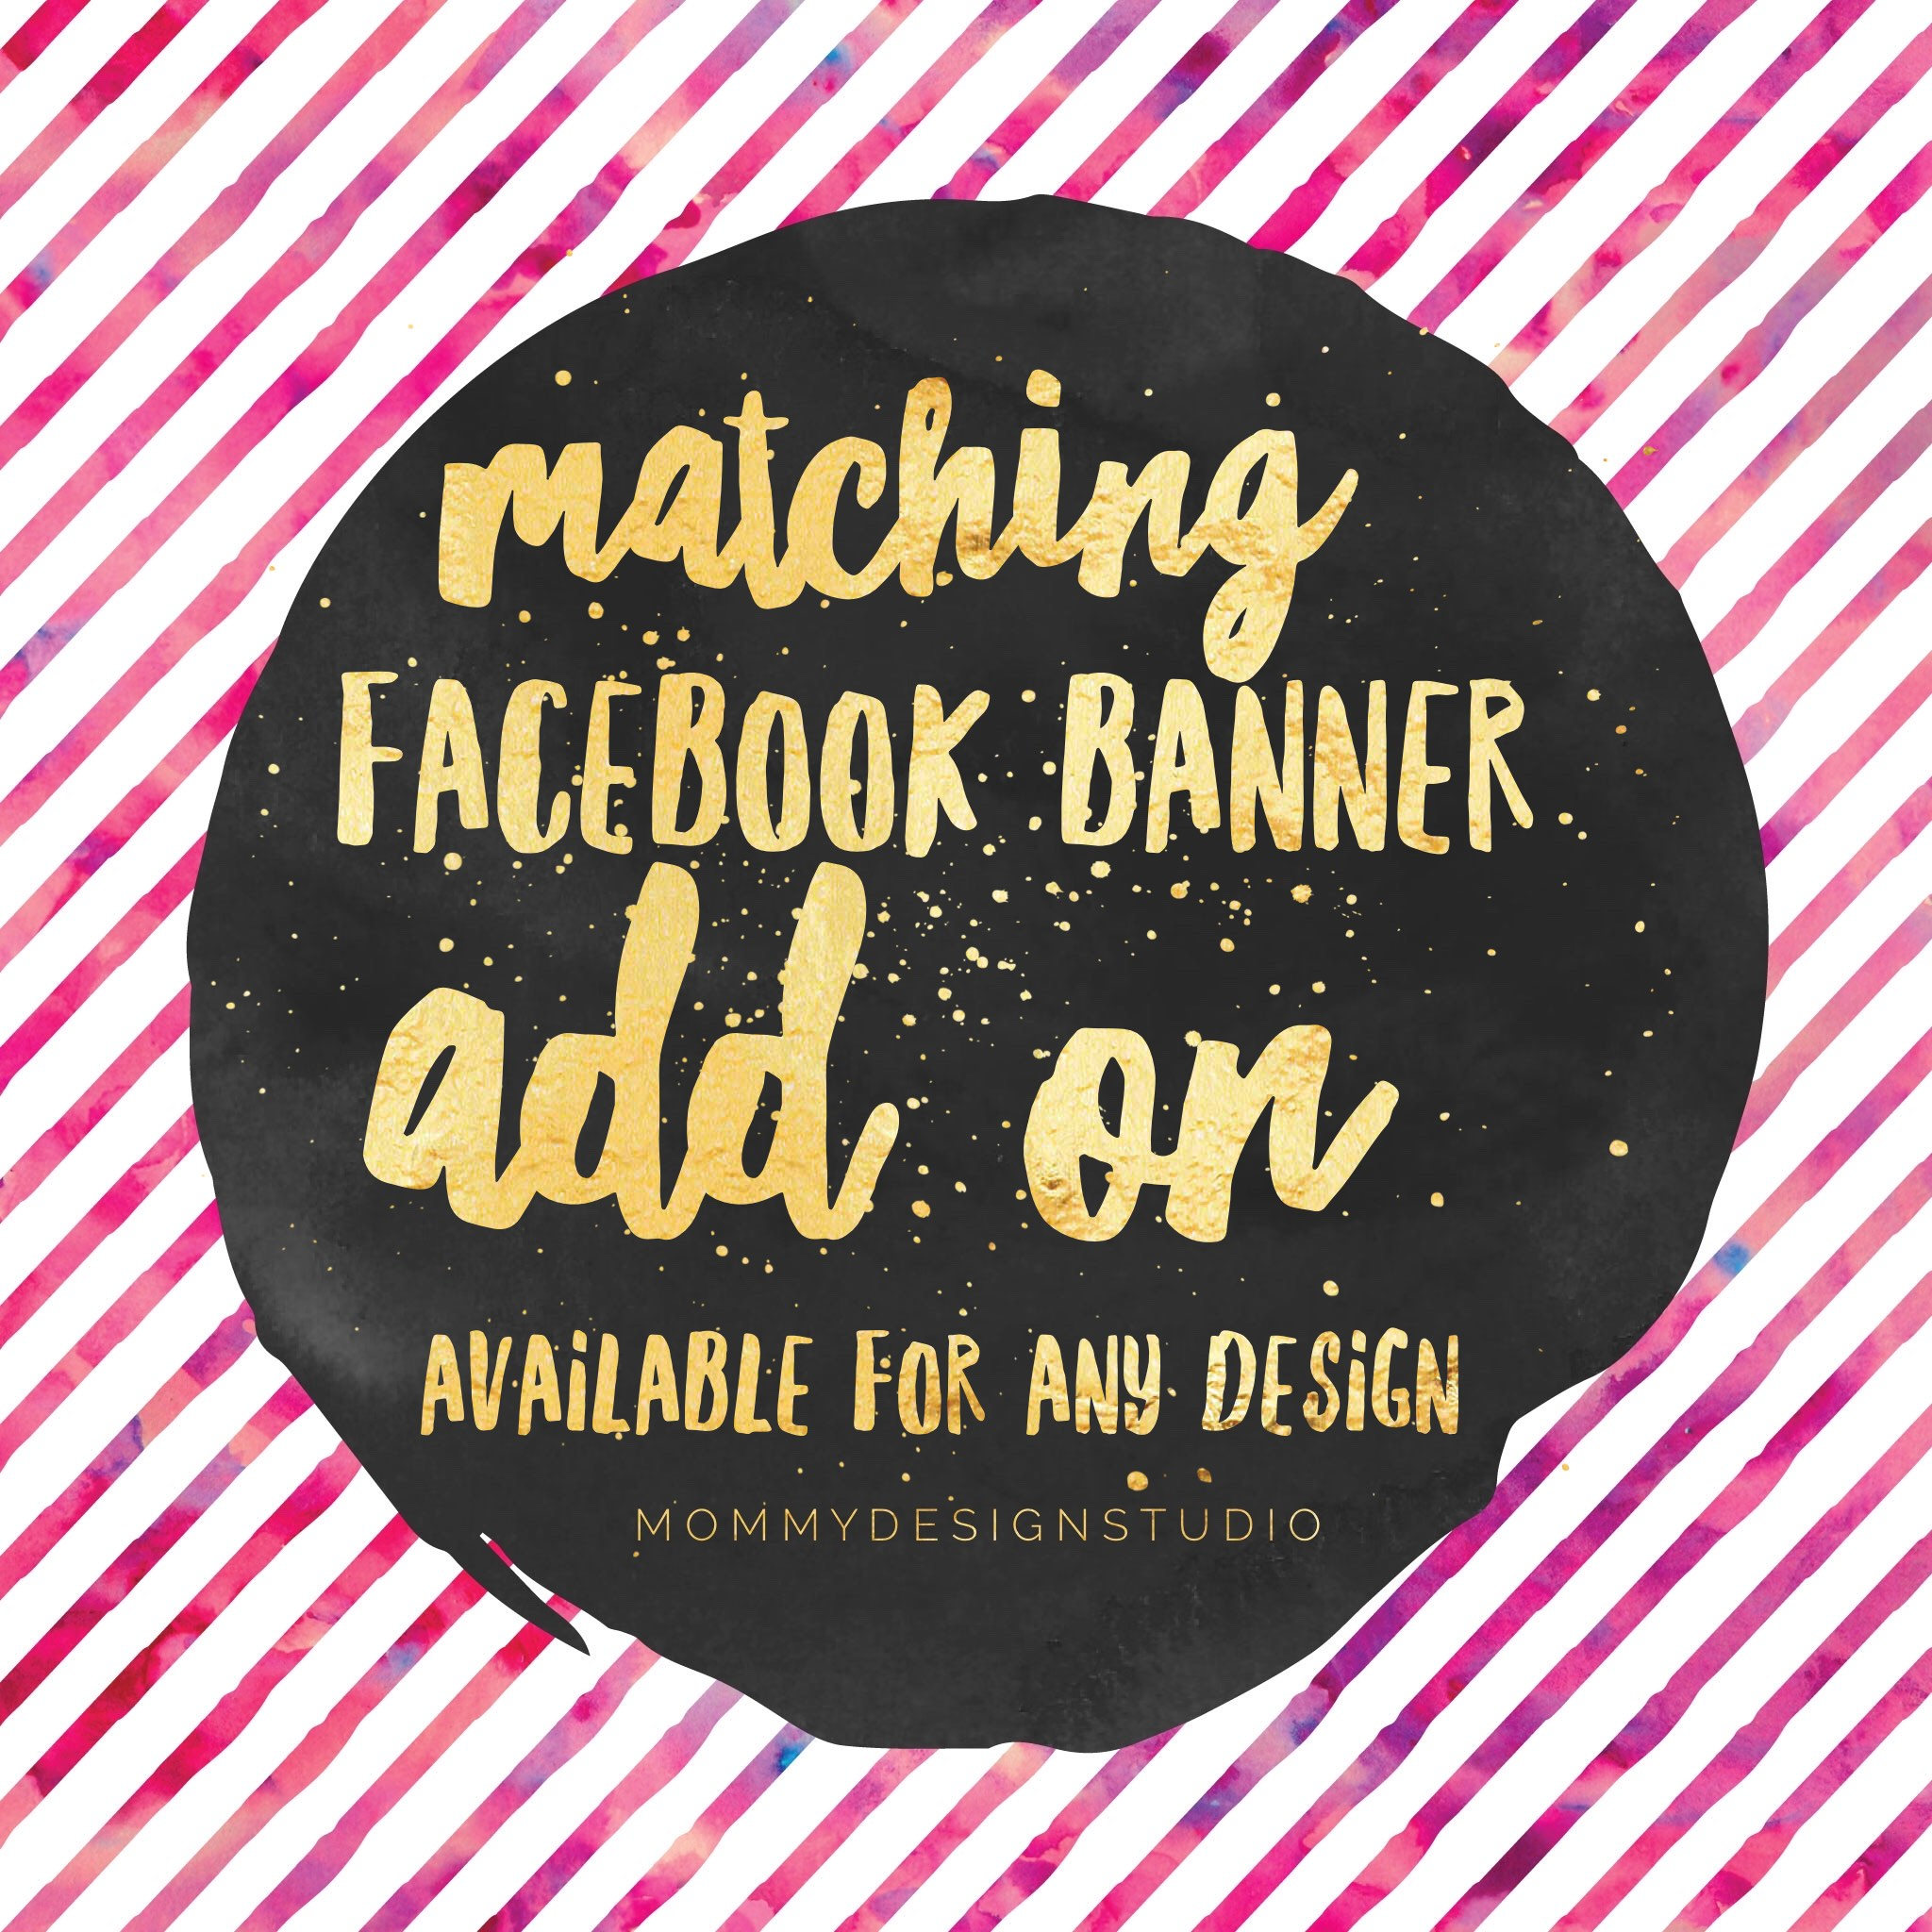 how to start a fashion business on facebook